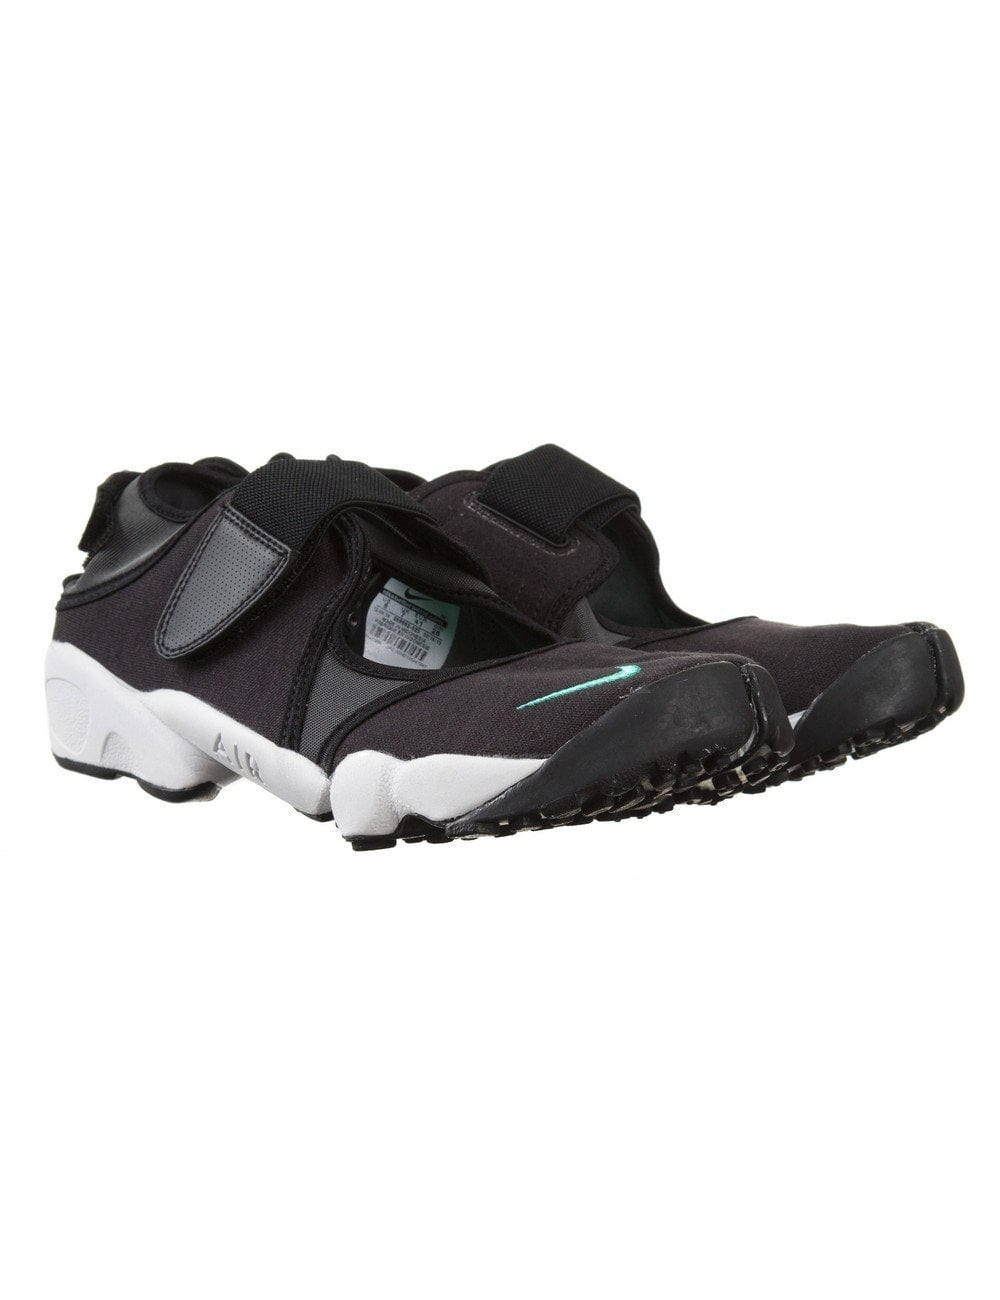 4a748011f3d4f Nike Air Rift Shoes - Black Menta-Anthracite Black - Footwear from ...